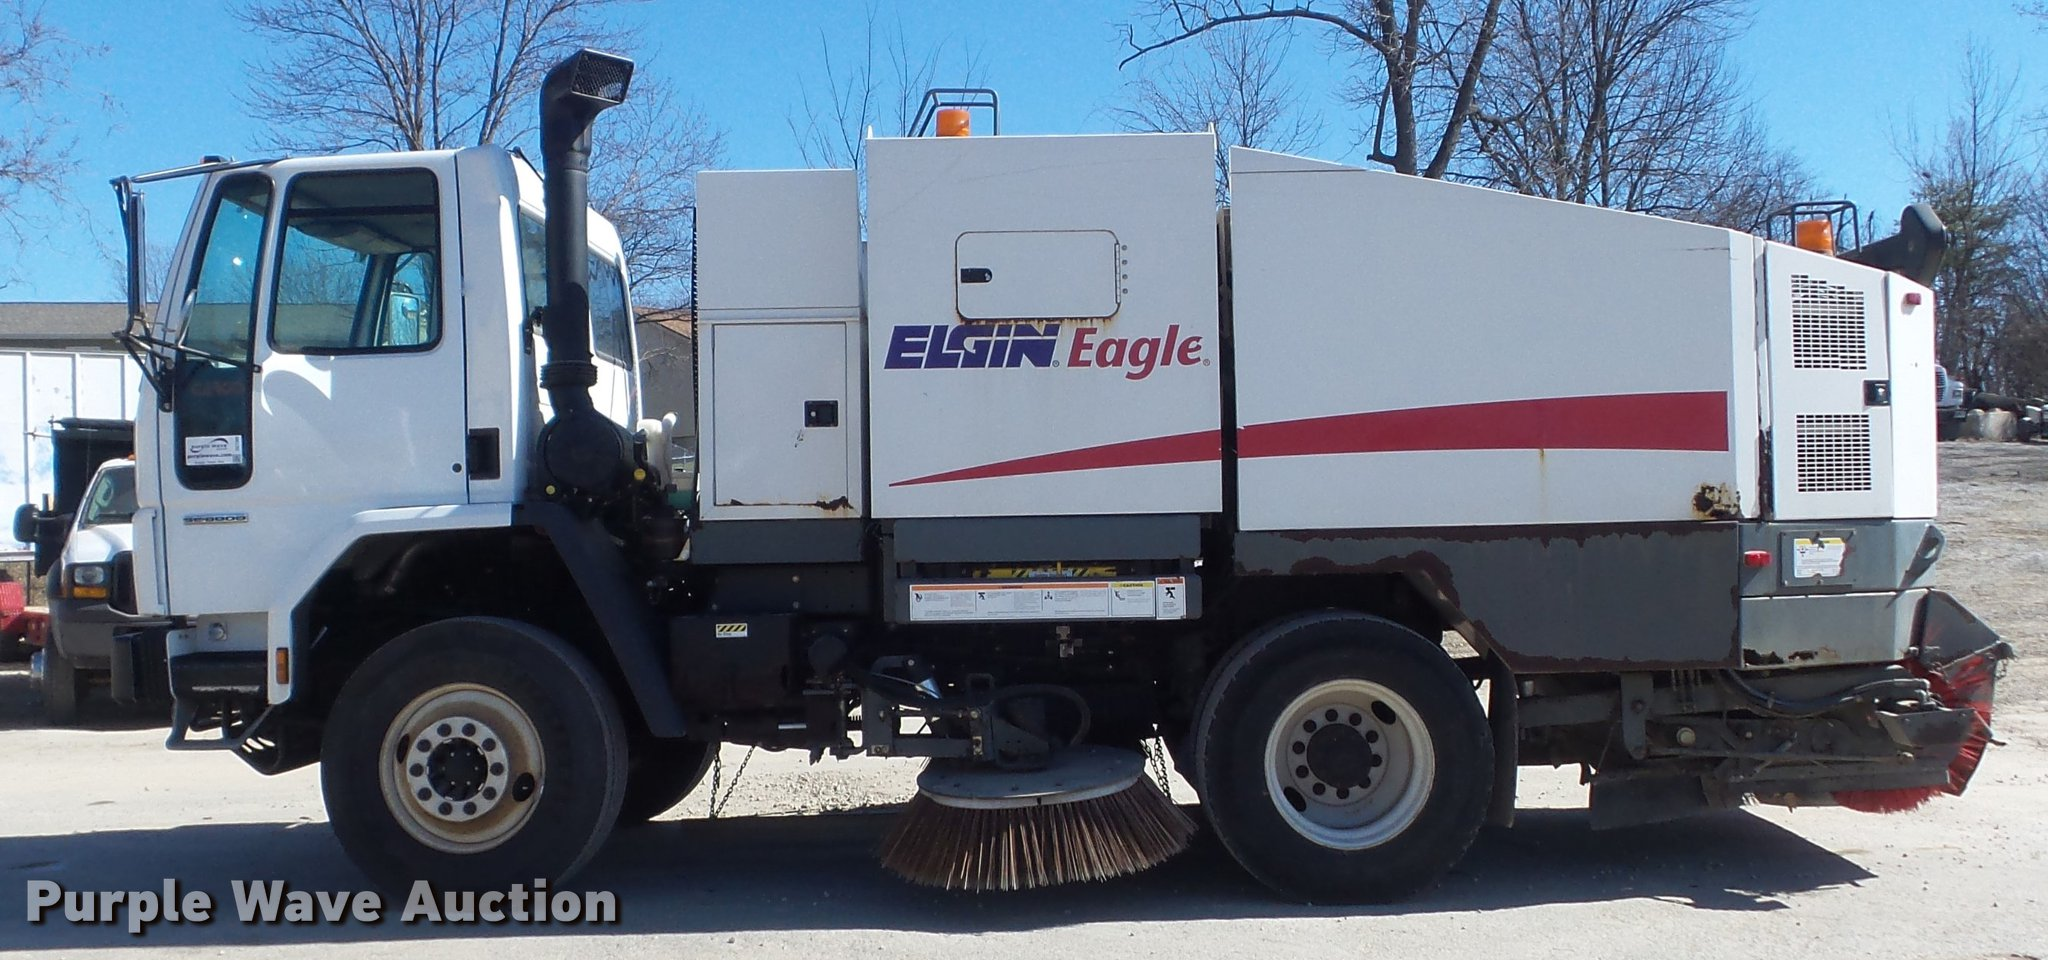 ... Elgin Eagle series F street sweeper Full size in new window ...